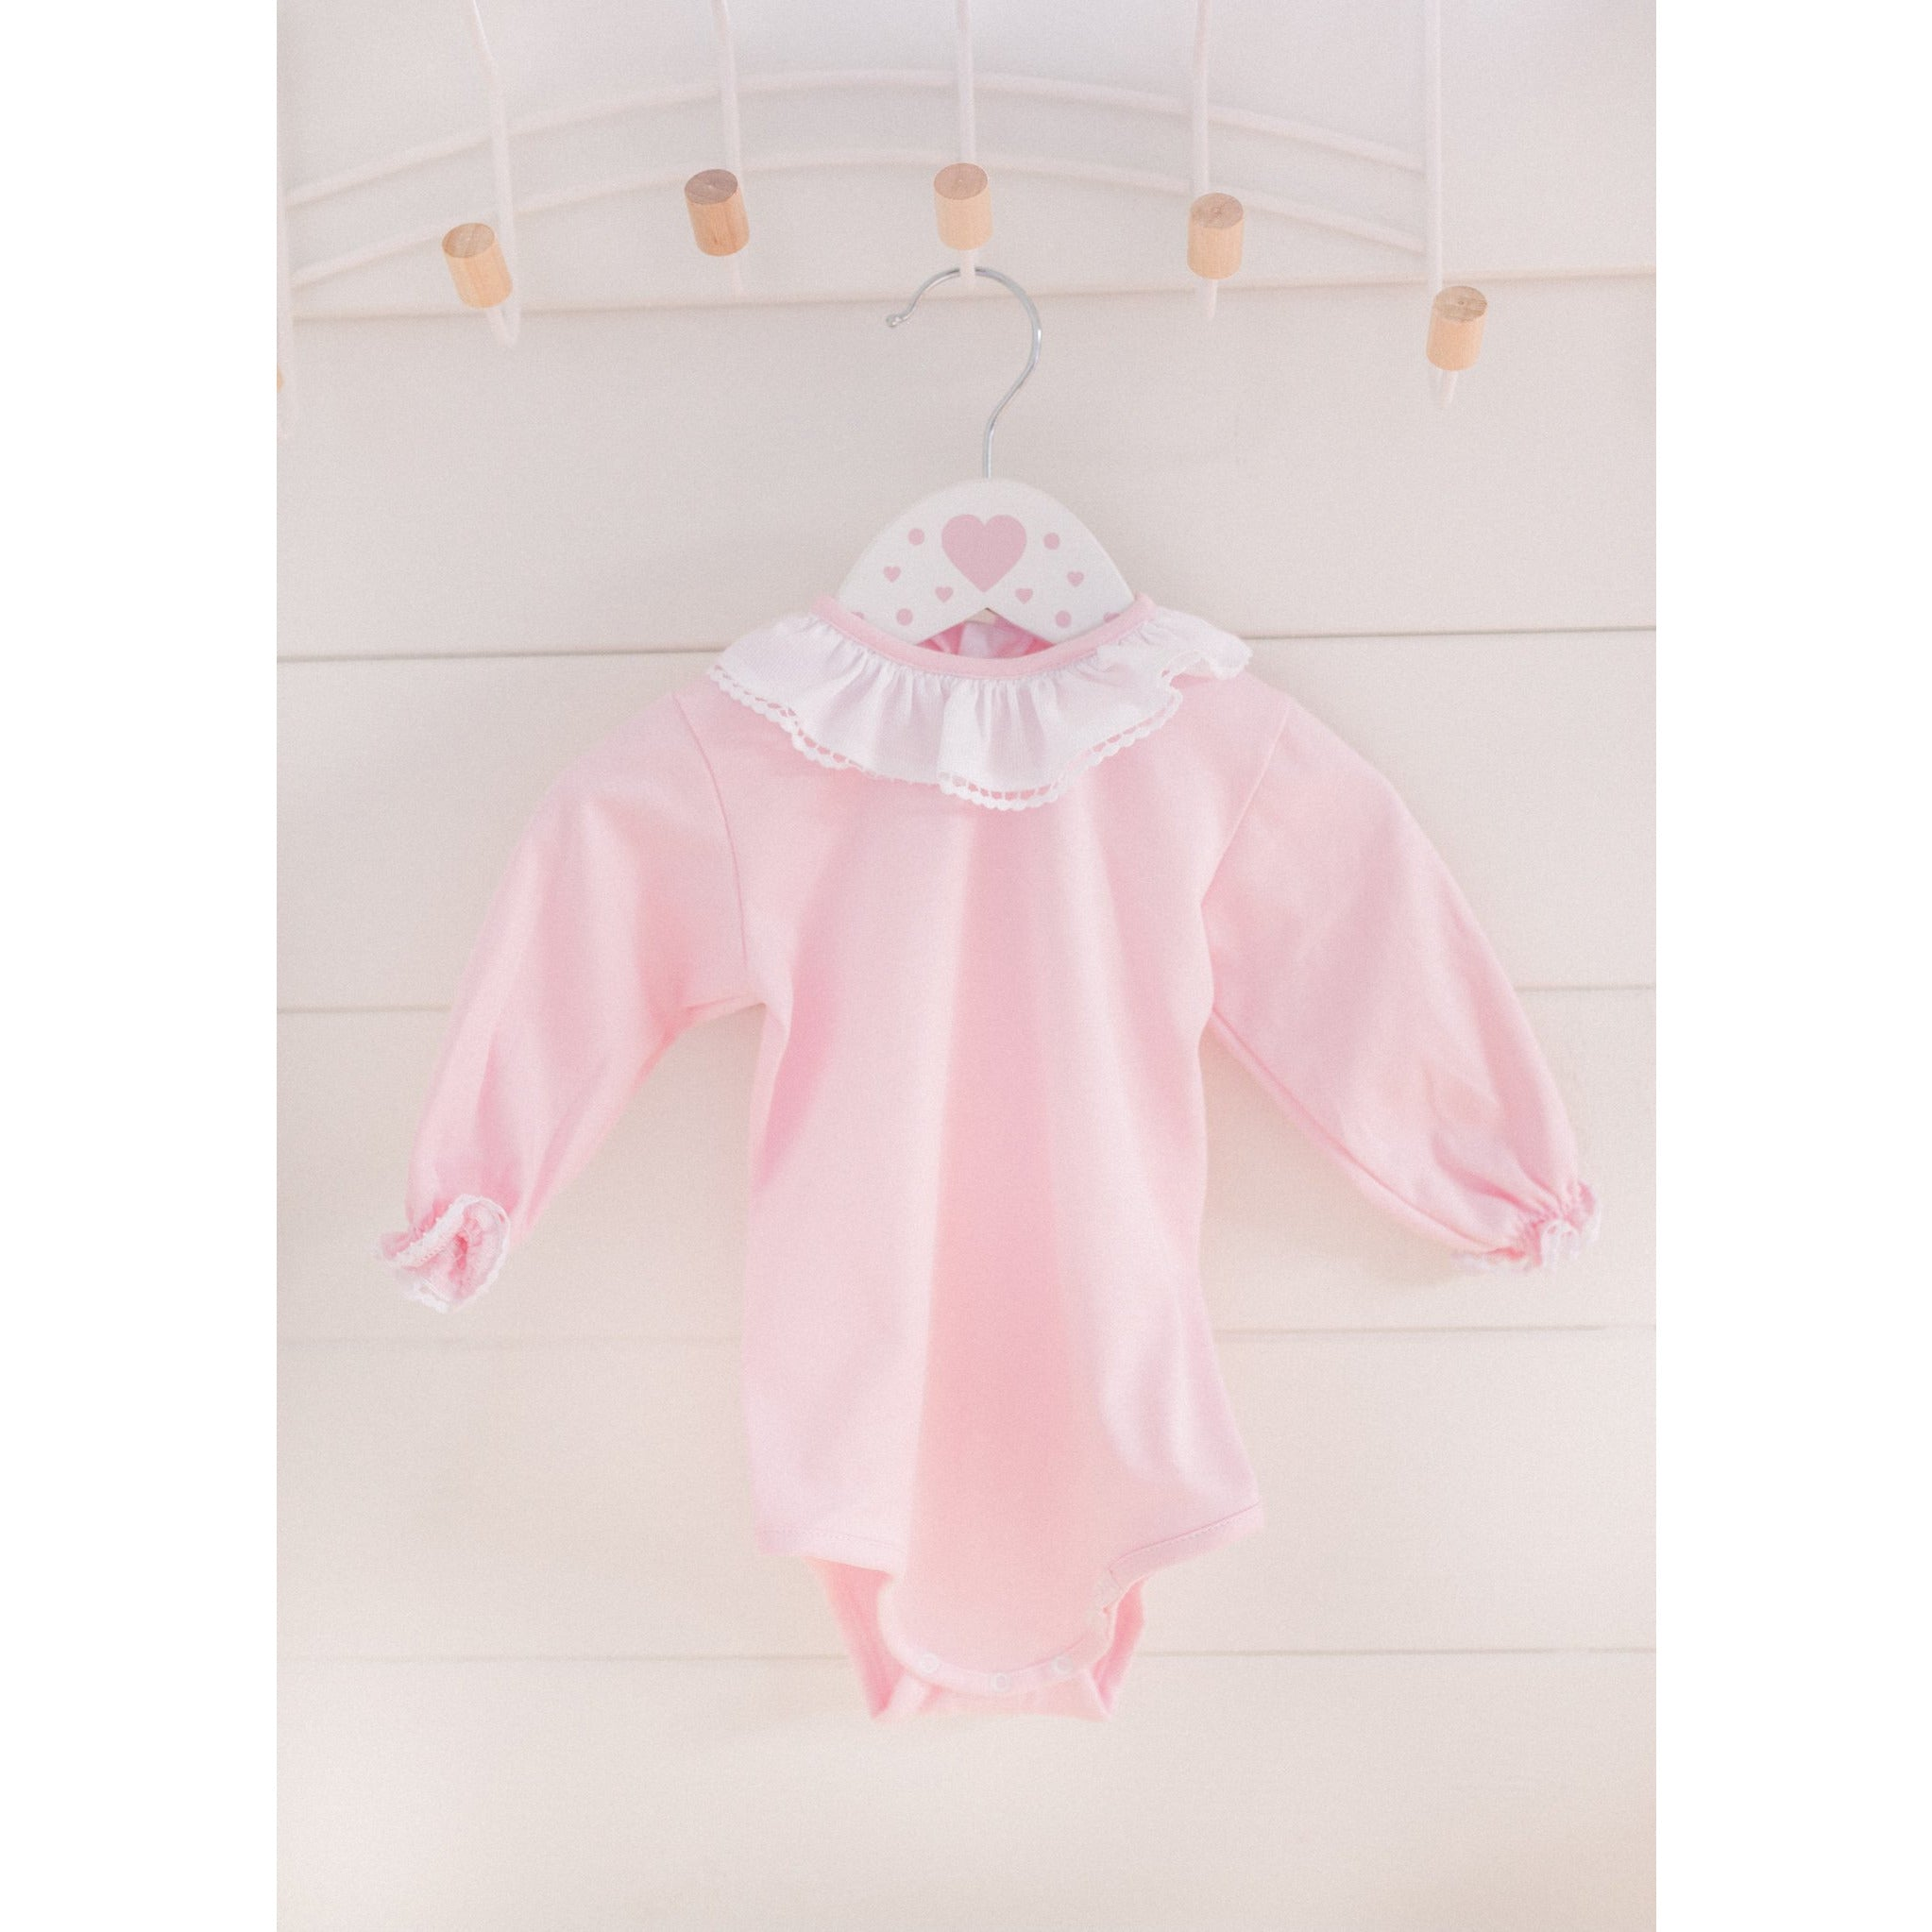 Pink and White frilly collar  baby vest